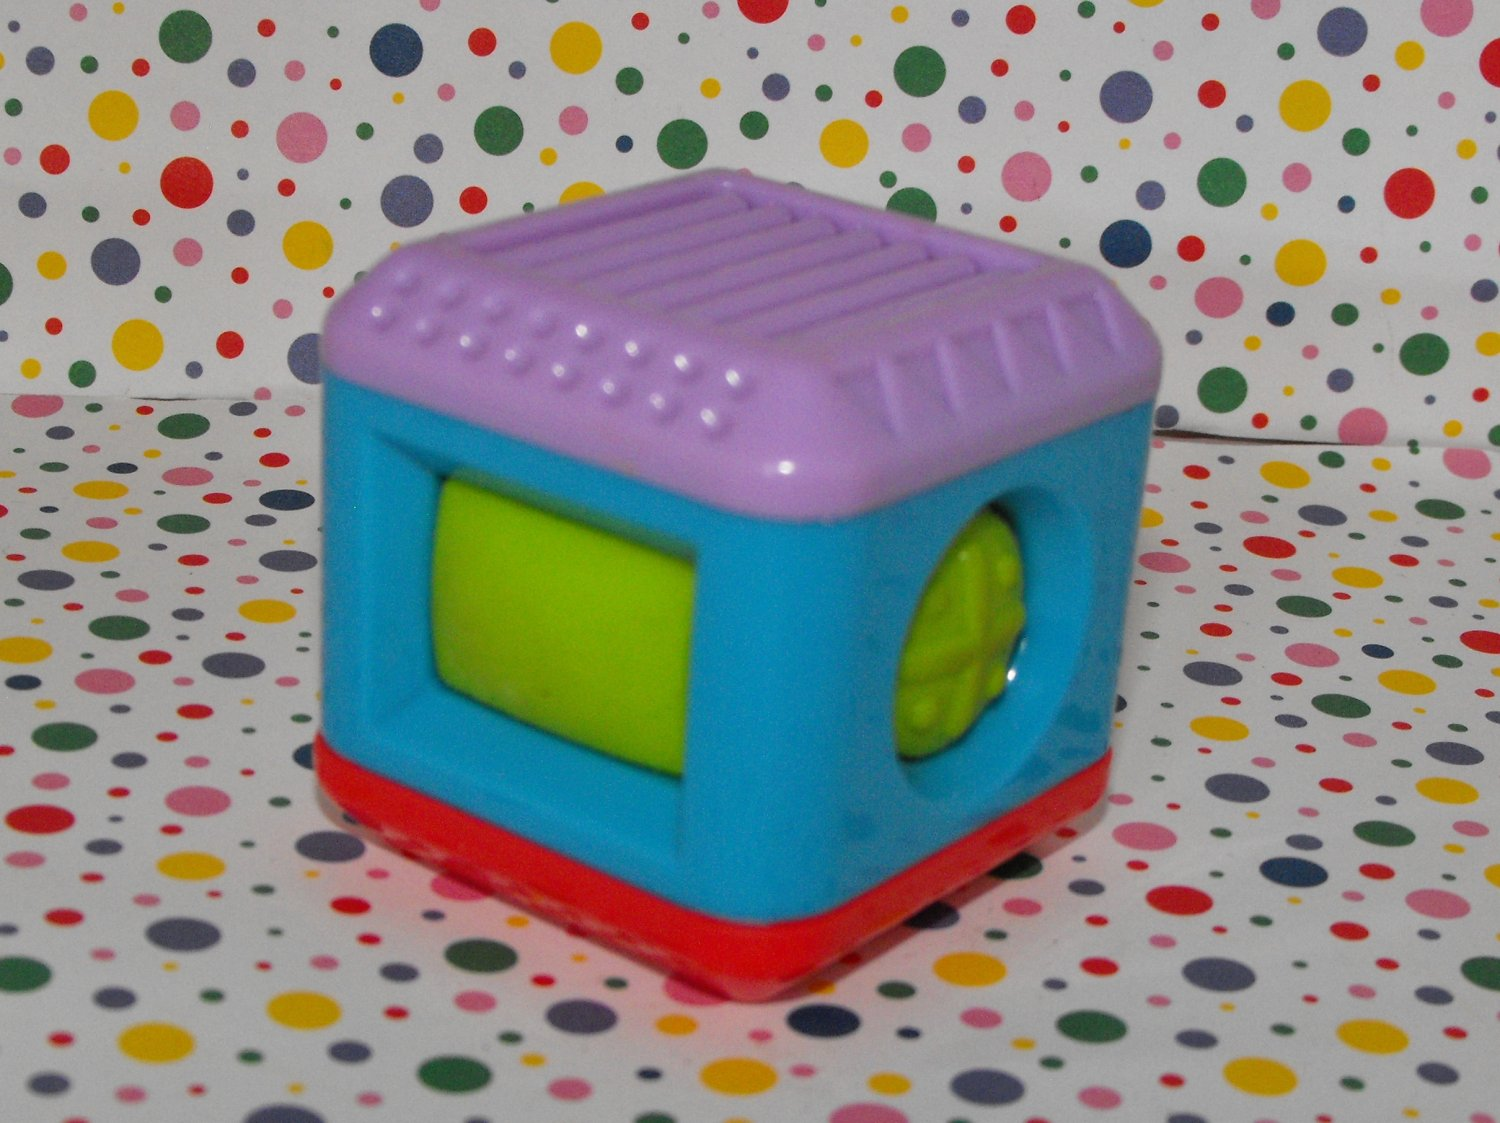 Fisher-Price Peek-a-Blocks Touch Sensations Block Replacement Part